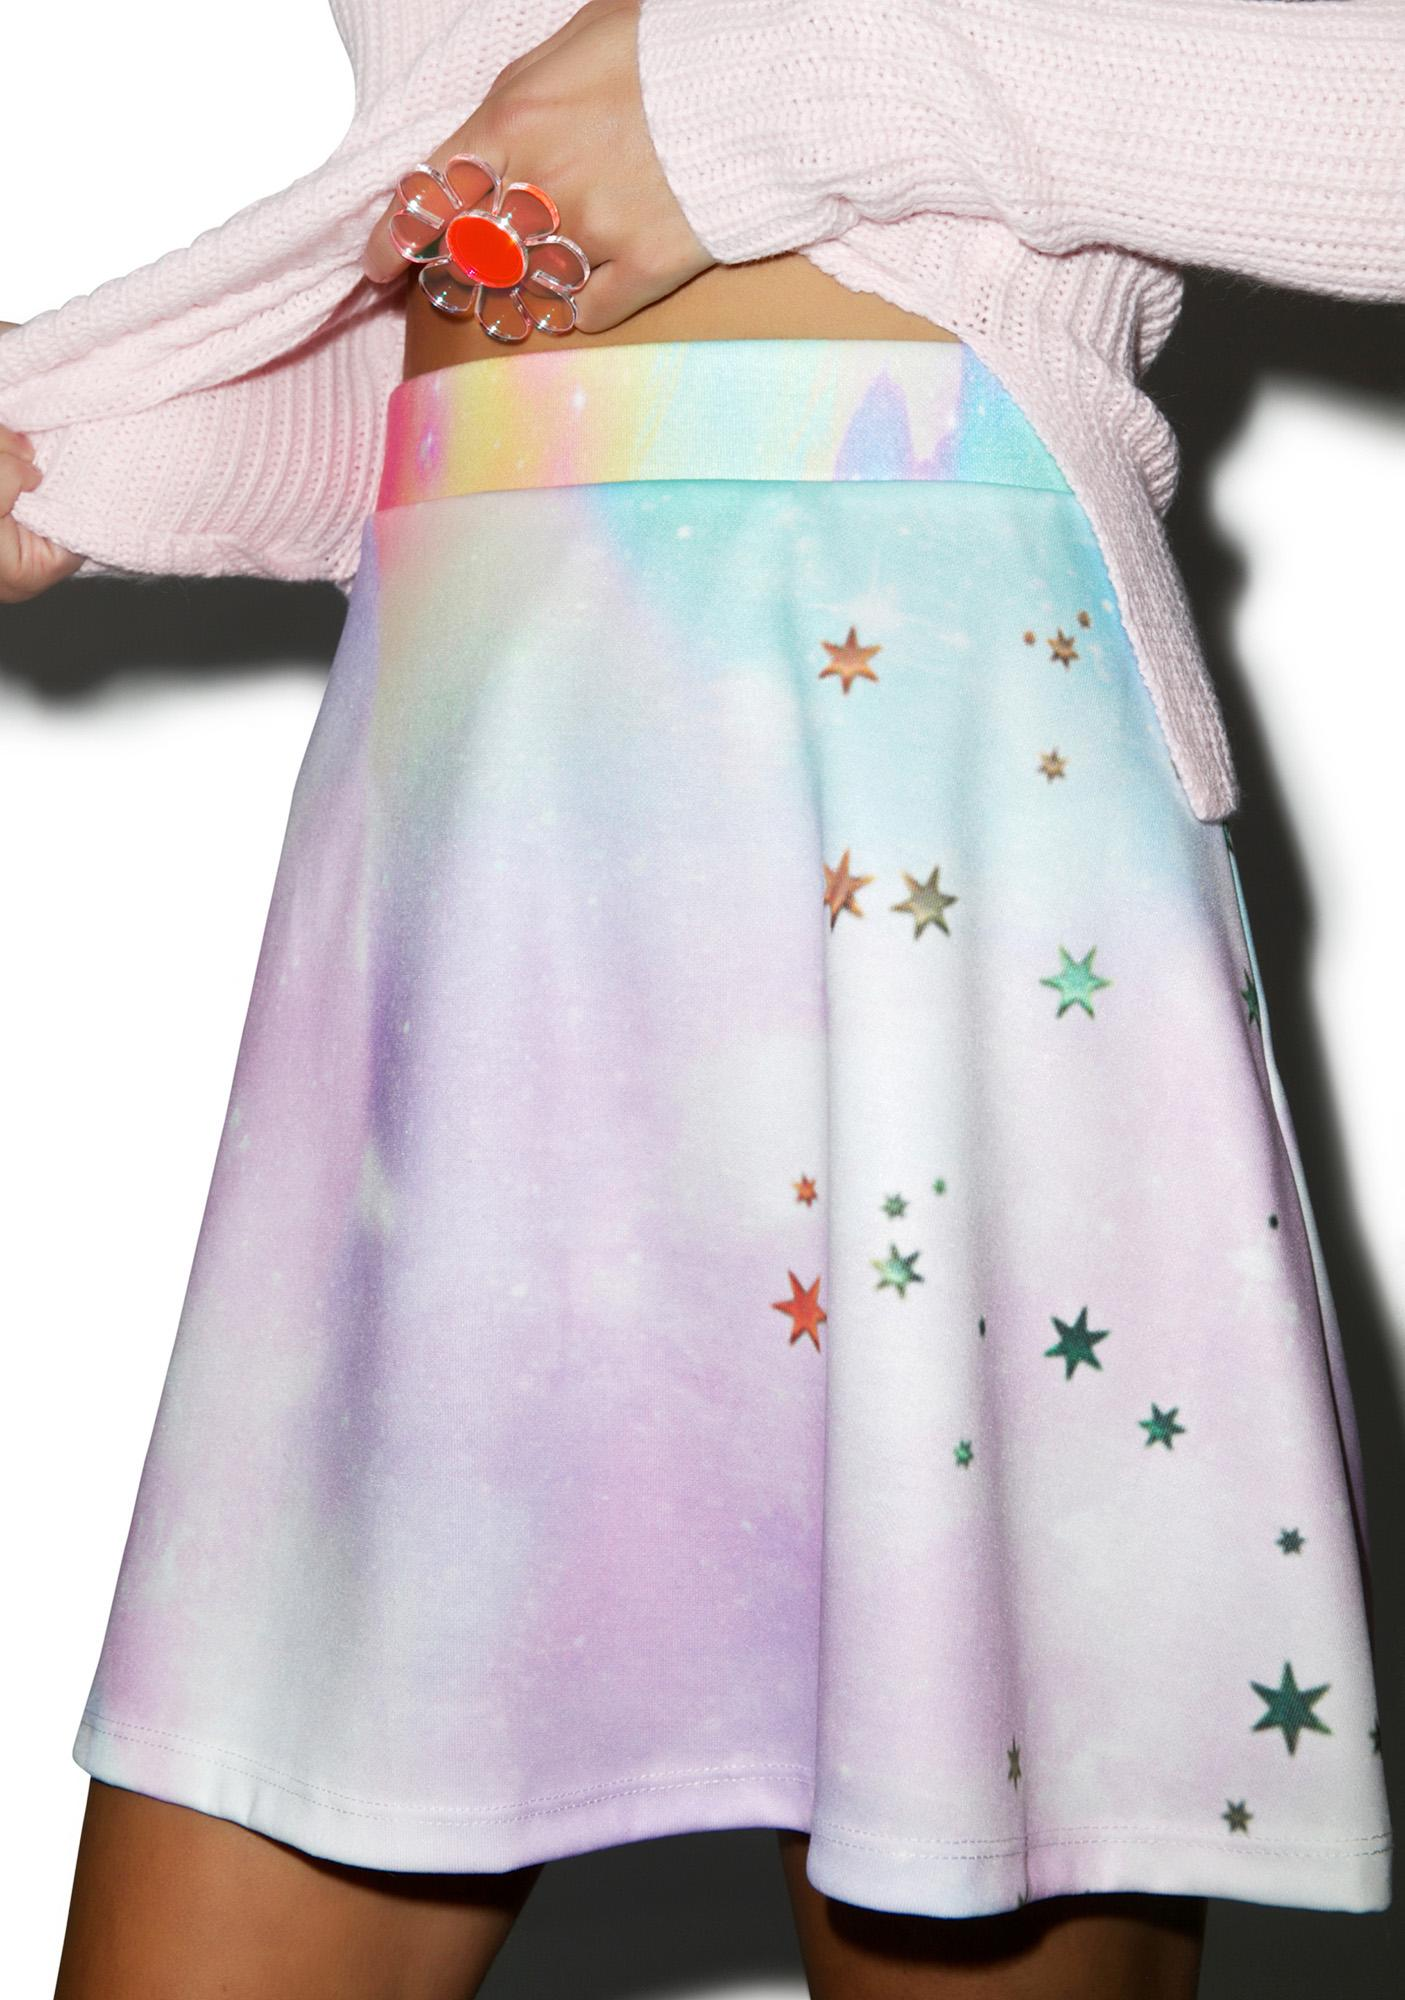 Star Struck Skirt